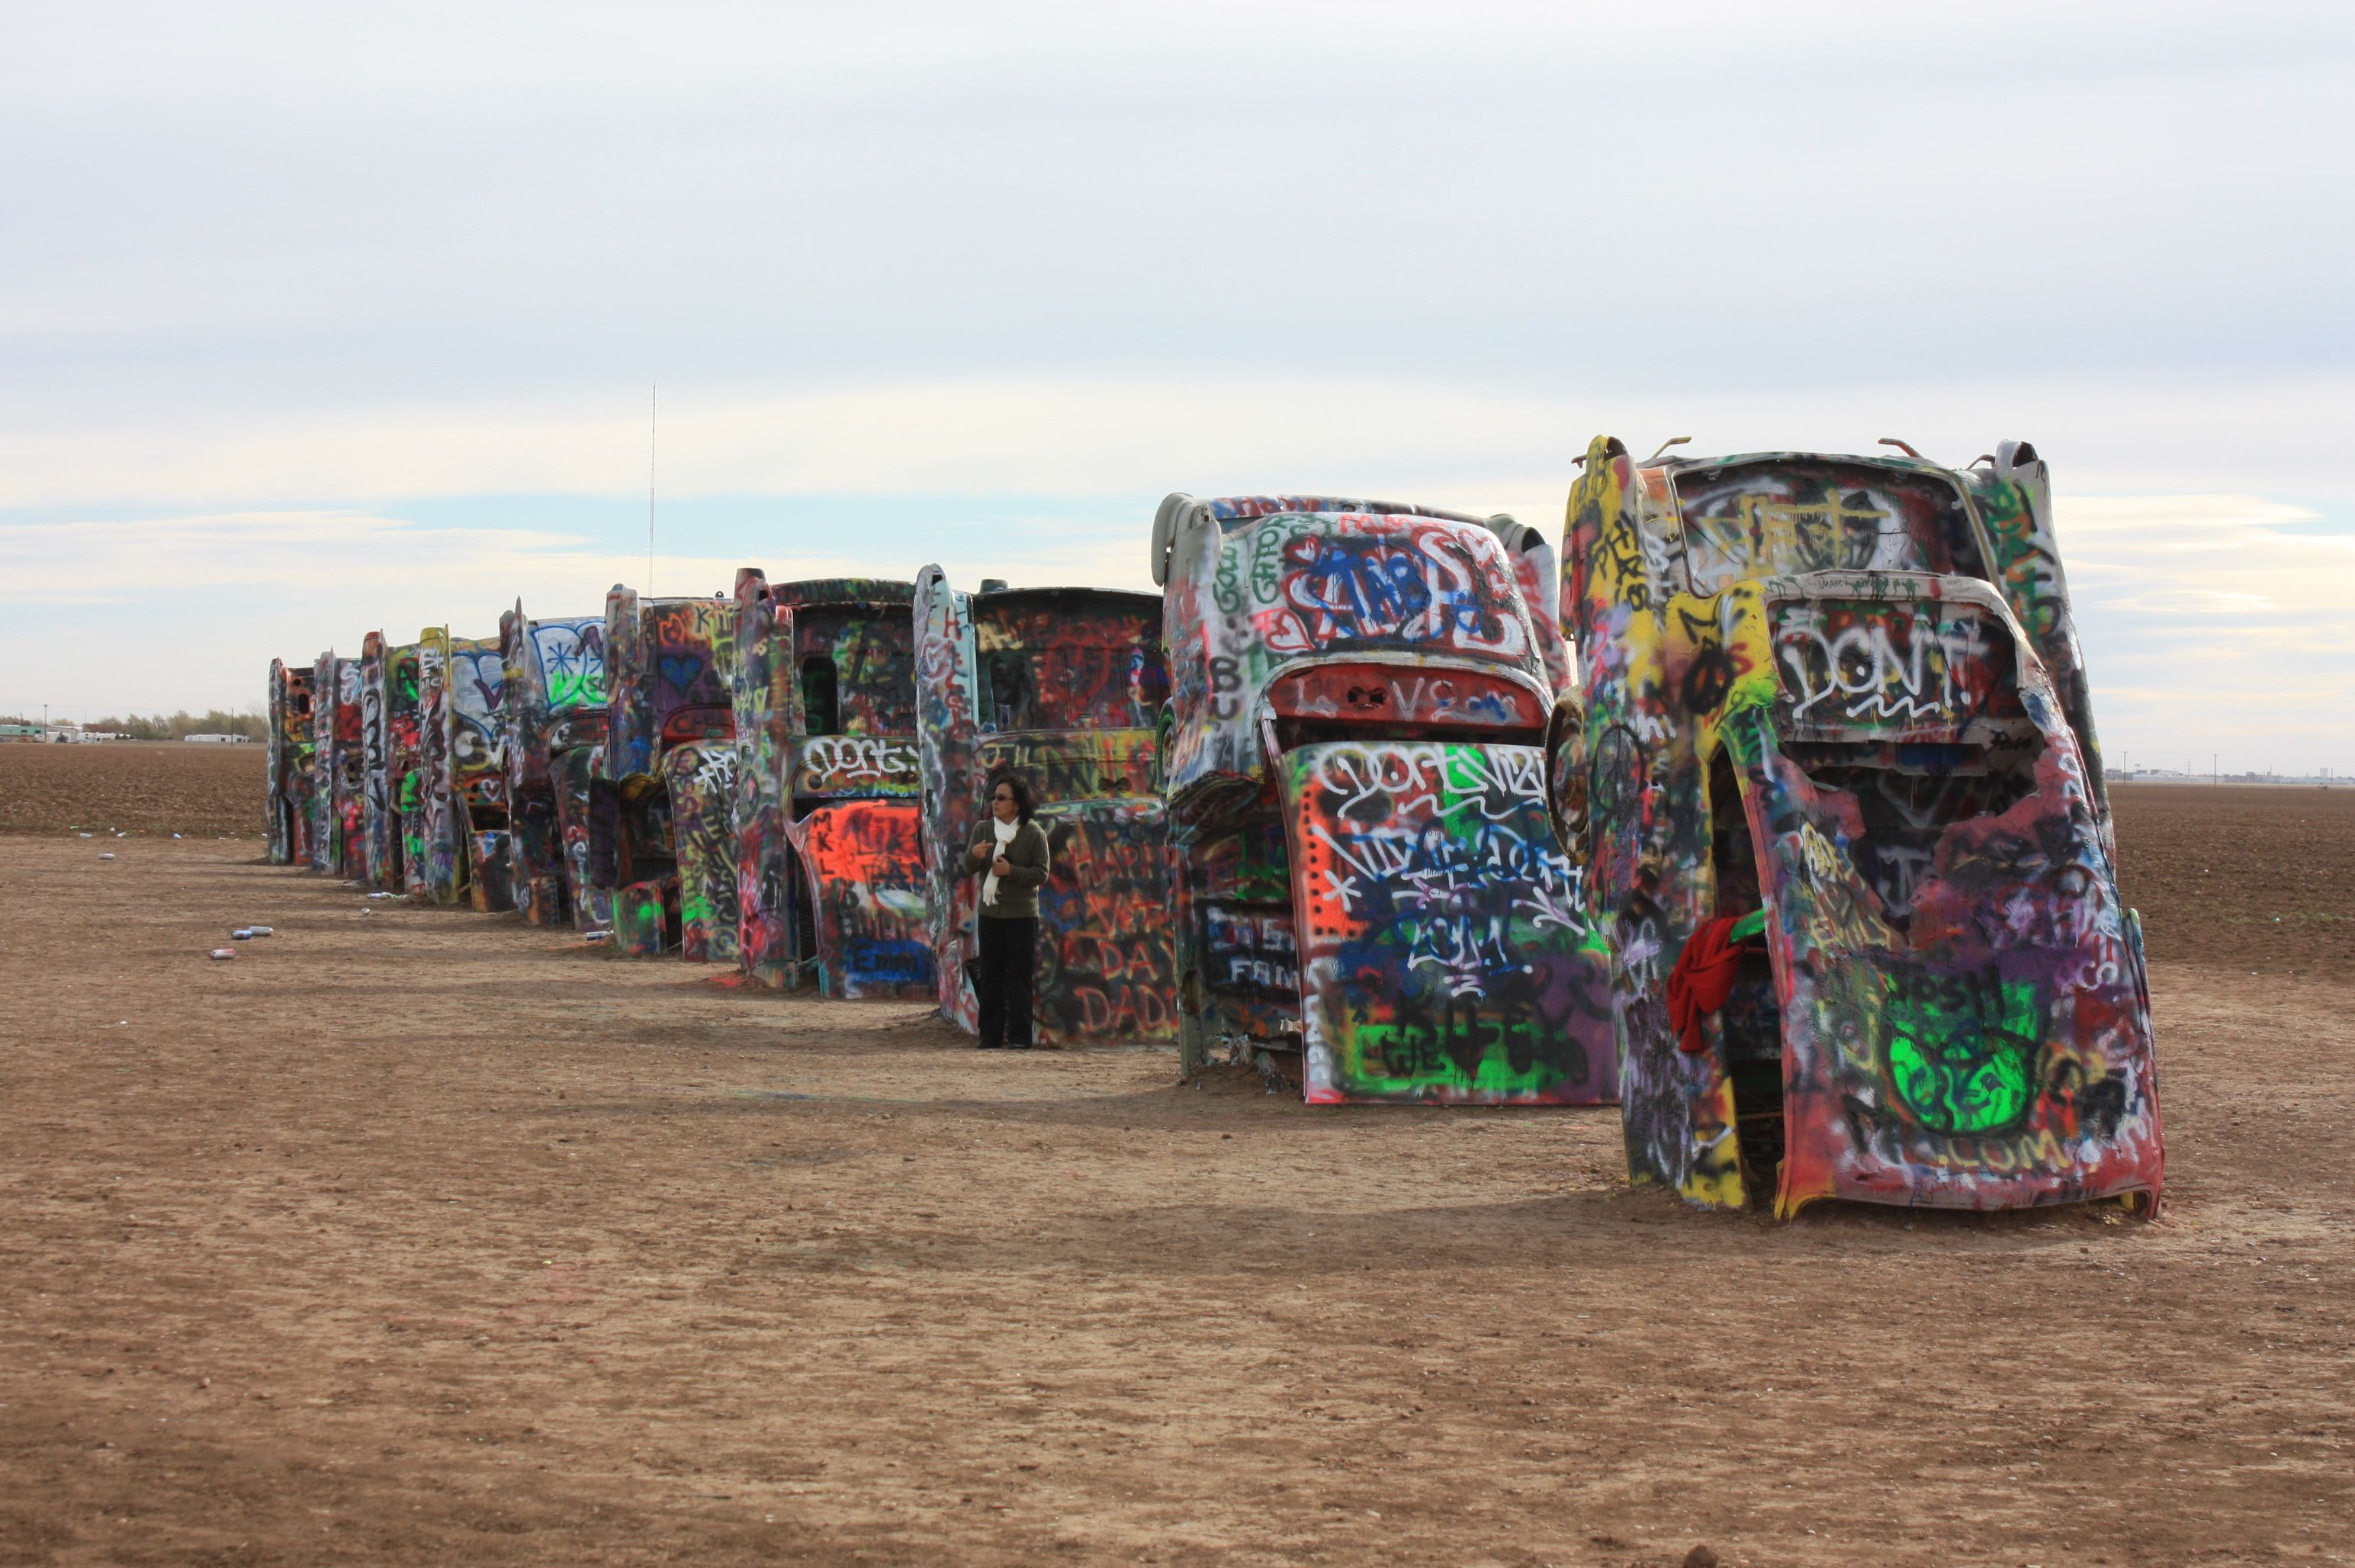 cadillac ranch amarillo texas favorite places spaces pinterest. Cars Review. Best American Auto & Cars Review